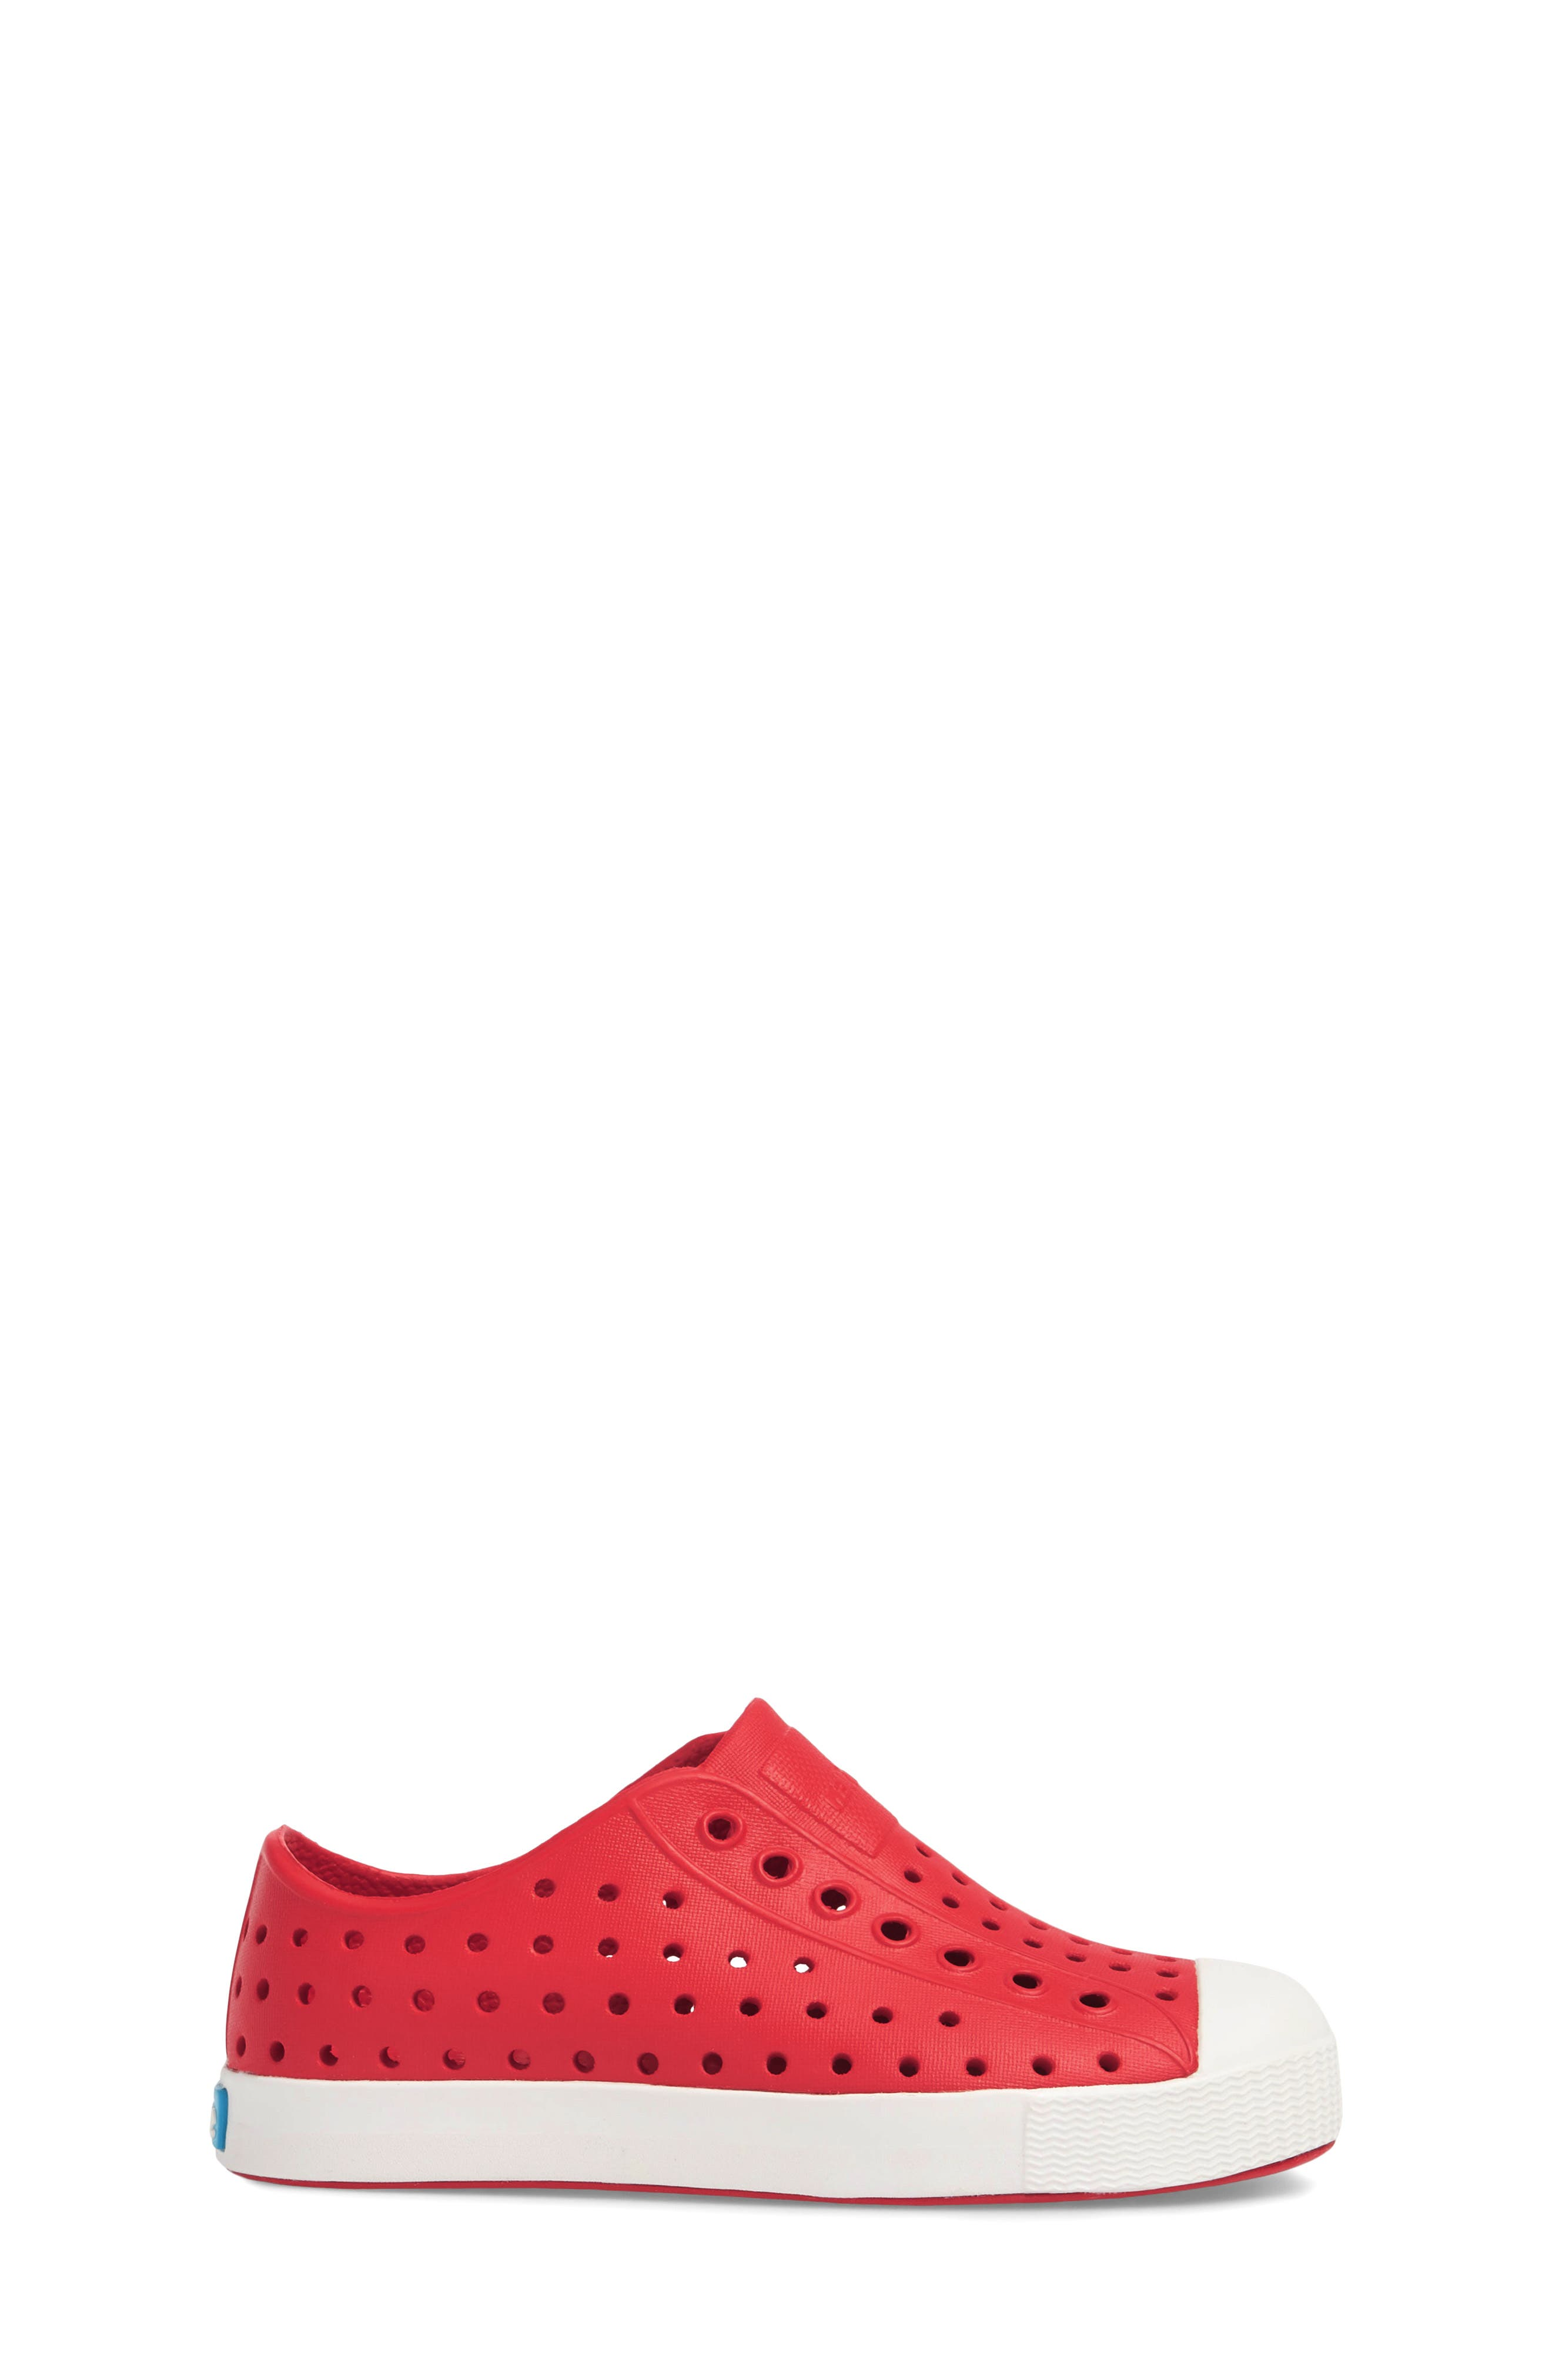 NATIVE SHOES, Jefferson Water Friendly Slip-On Vegan Sneaker, Alternate thumbnail 3, color, TORCH RED/ SHELL WHITE